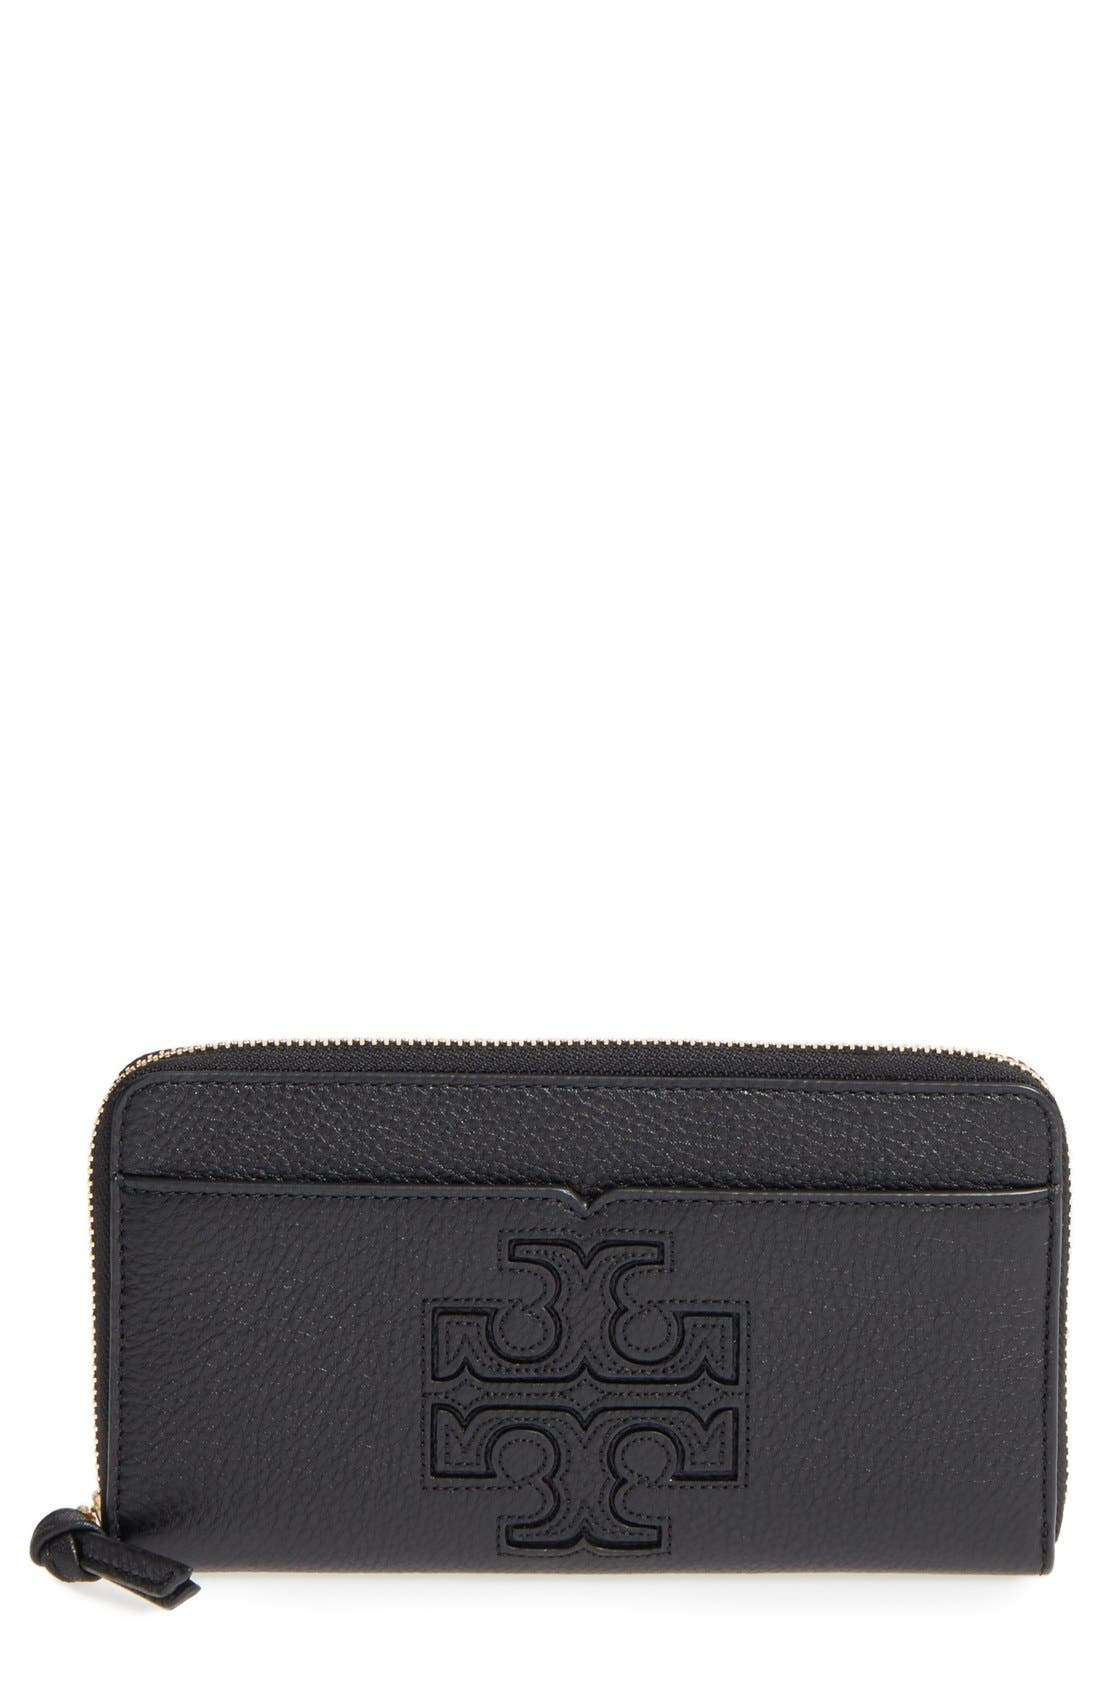 Alternate Image 1 Selected - Tory Burch 'Harper' Leather Zip Continental Wallet